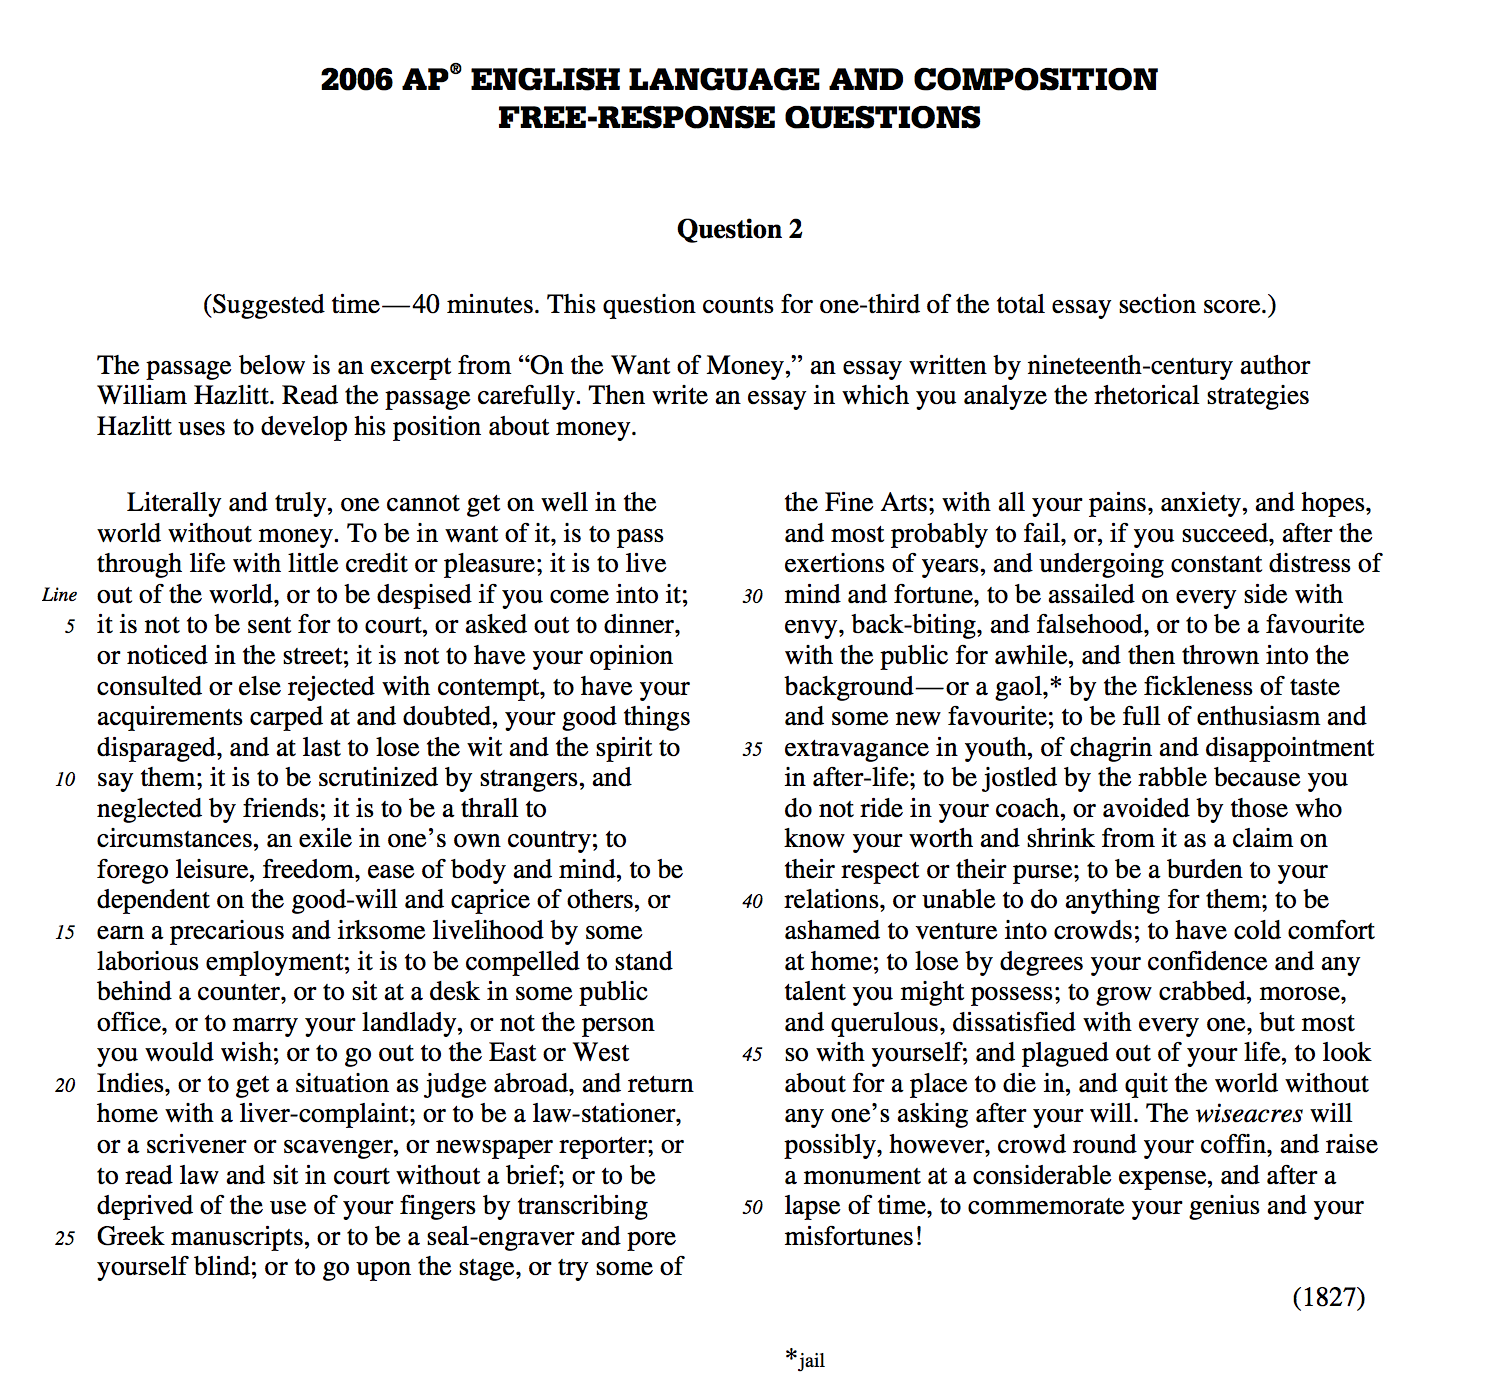 ap language and composition rhetorical analysis essay questions Rhetorical analysis for pre-ap english by beverly a higgins the purpose of this module is to prepare pre-ap english students for ap language and composition by how does sarah vowell use rhetorical elements in the essay shooting dad, and how does the use of these.